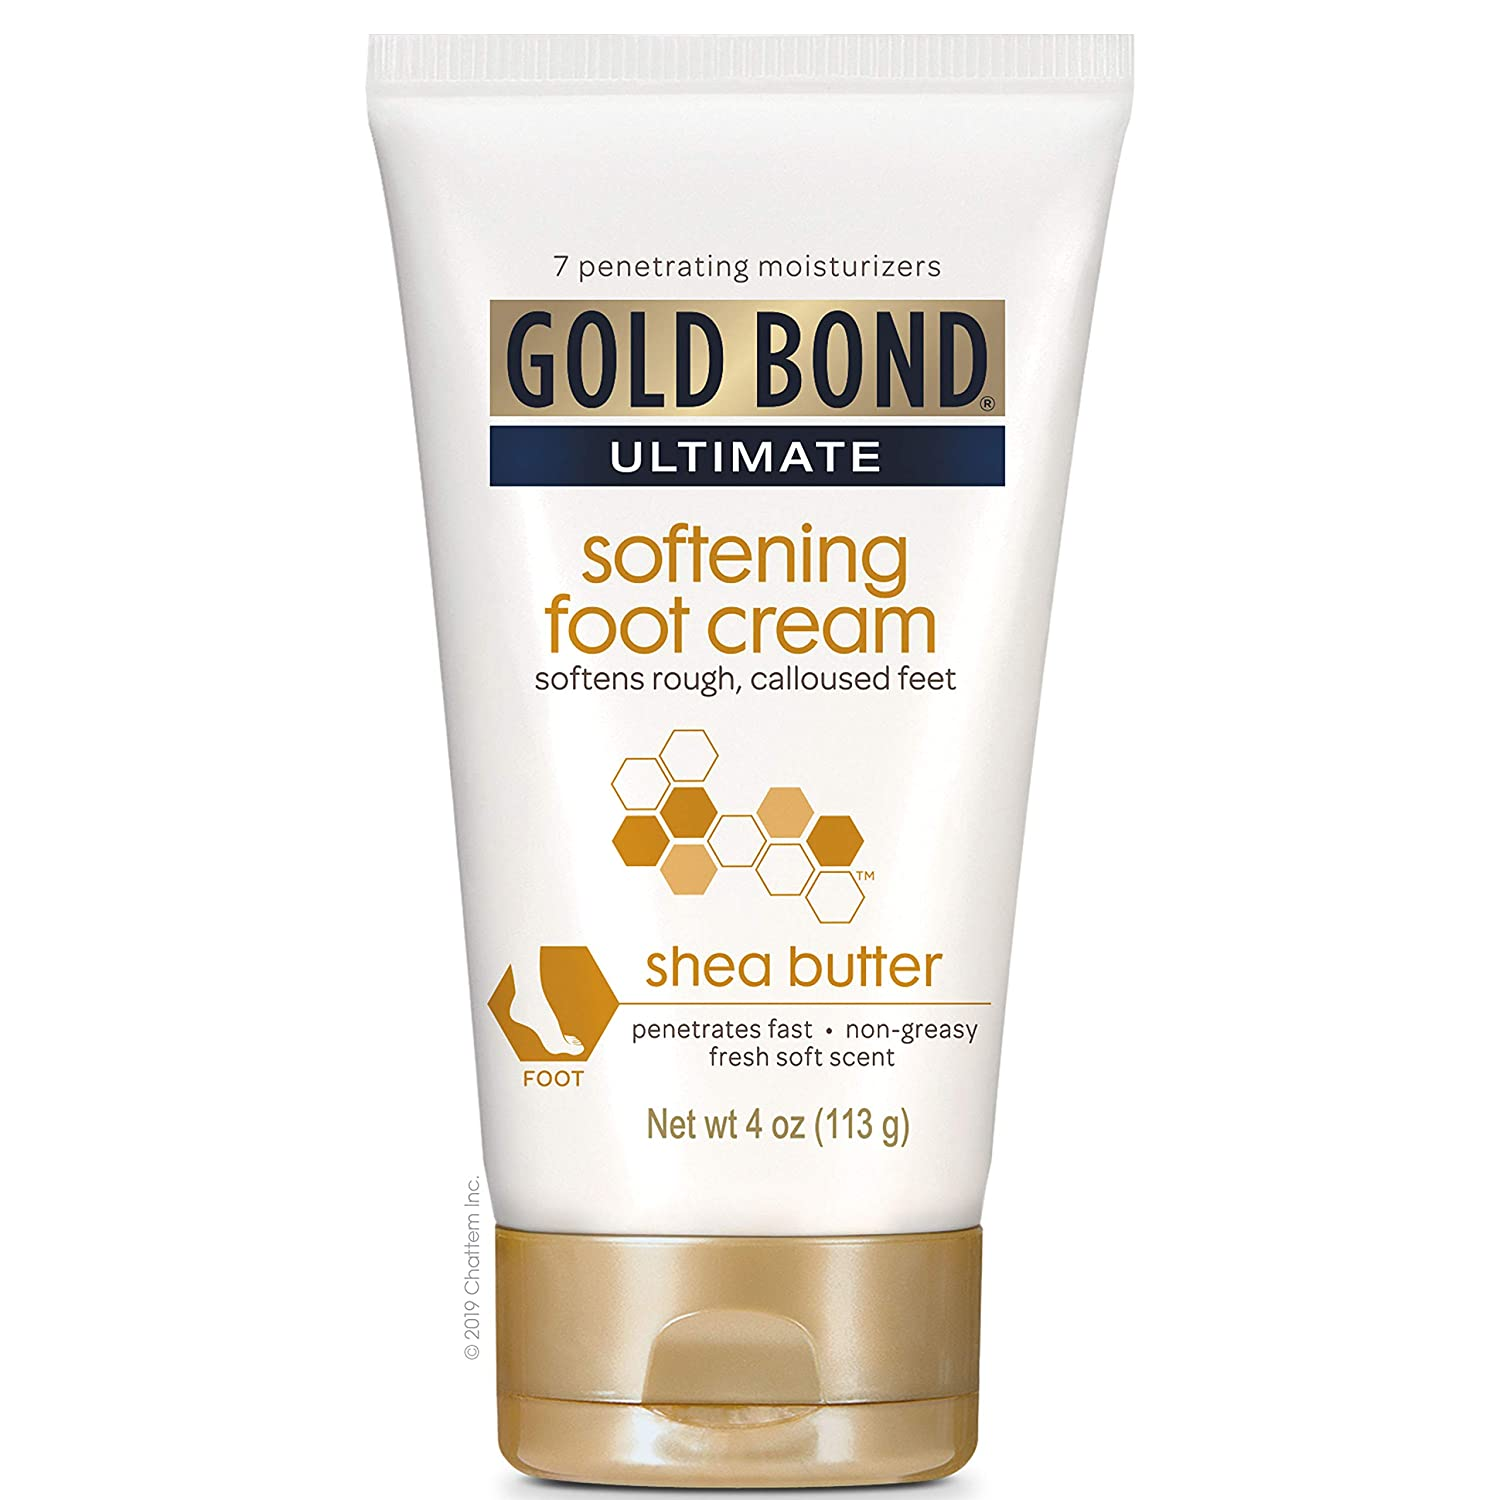 Gold Bond Ultimate Softening Foot Cream with Shea Butter, 4 Ounce, Leaves Rough, Dry, Calloused Feet, Heels, and Soles Feeling Smoother and Softer. Includes Vitamins A, C, E, and Silk Amino Acids.: Health & Personal Care